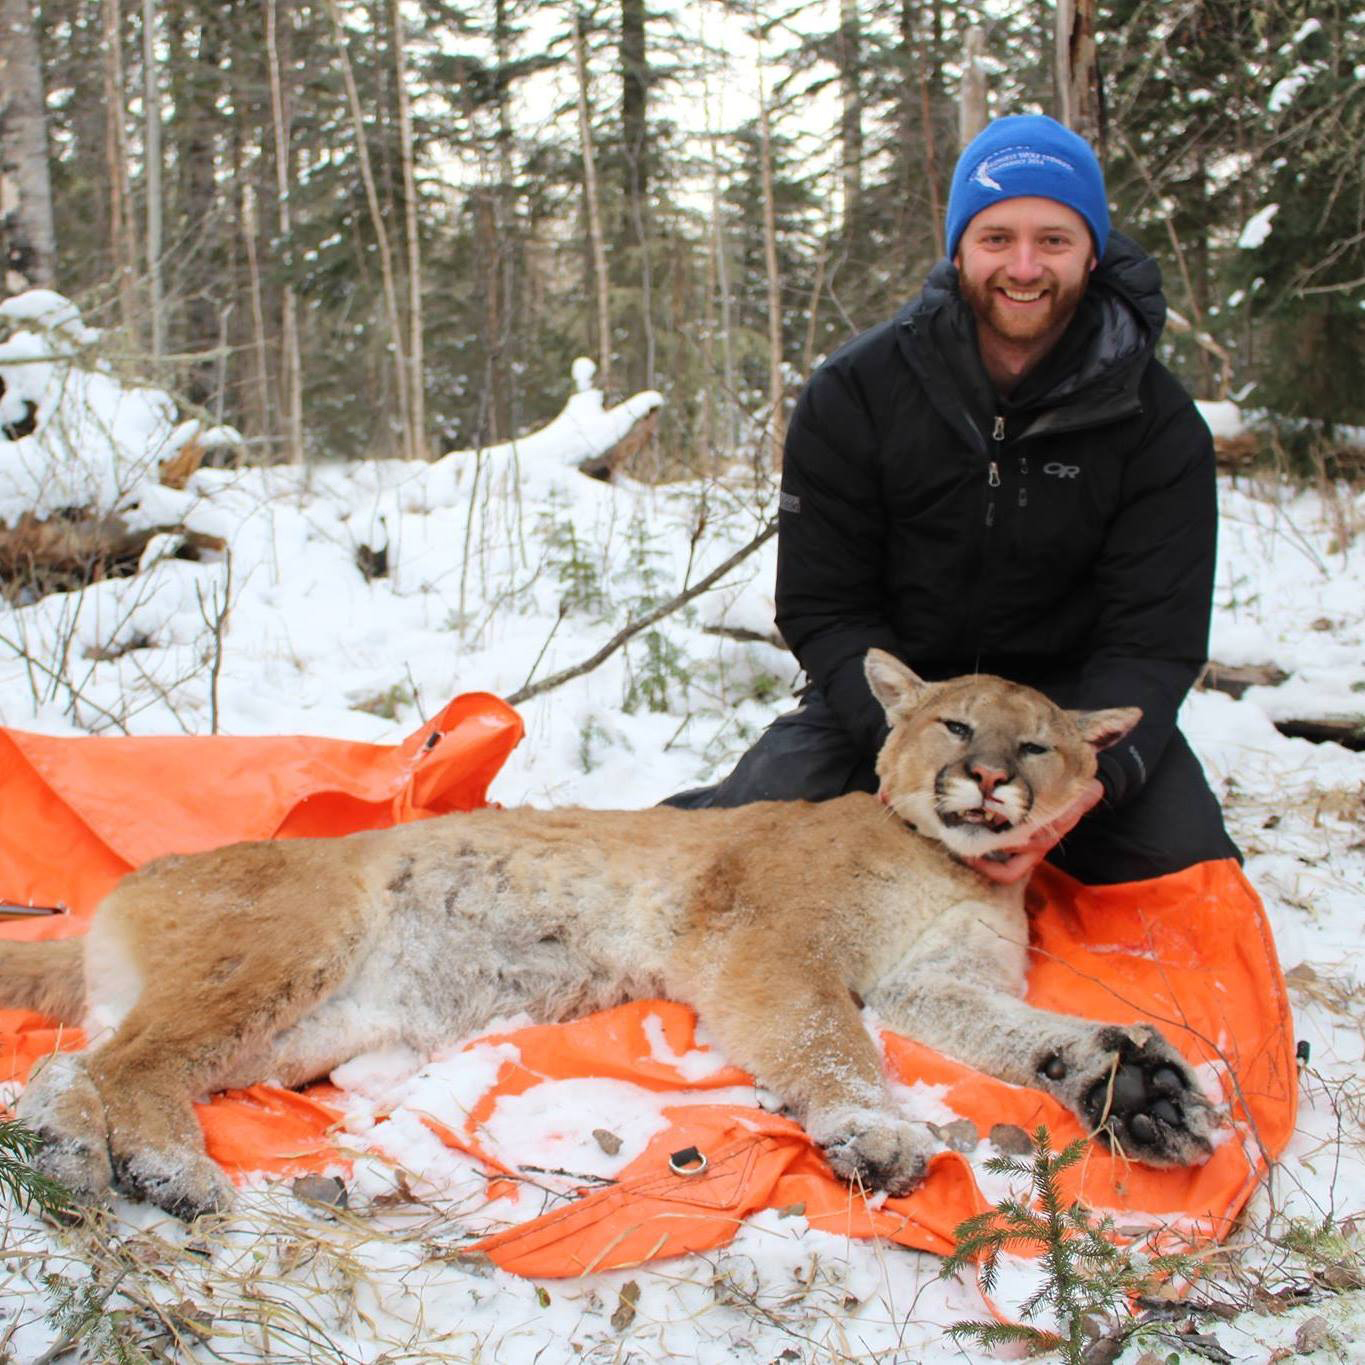 13 LUKE MOUNTAIN LION RESEARCH 1.jpg